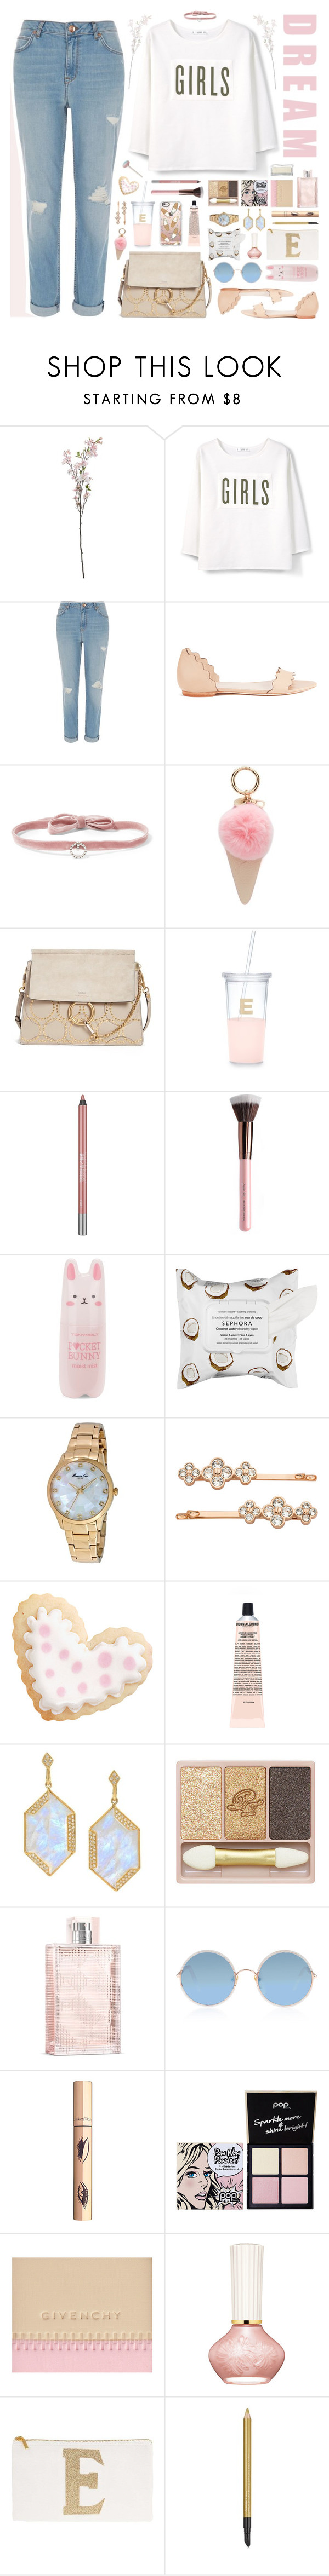 """Dream Girls🌸"" by ealkhaldi ❤ liked on Polyvore featuring MANGO, River Island, Loeffler Randall, DANNIJO, Iphoria, Chloé, Kate Spade, Urban Decay, Tony Moly and Sephora Collection"